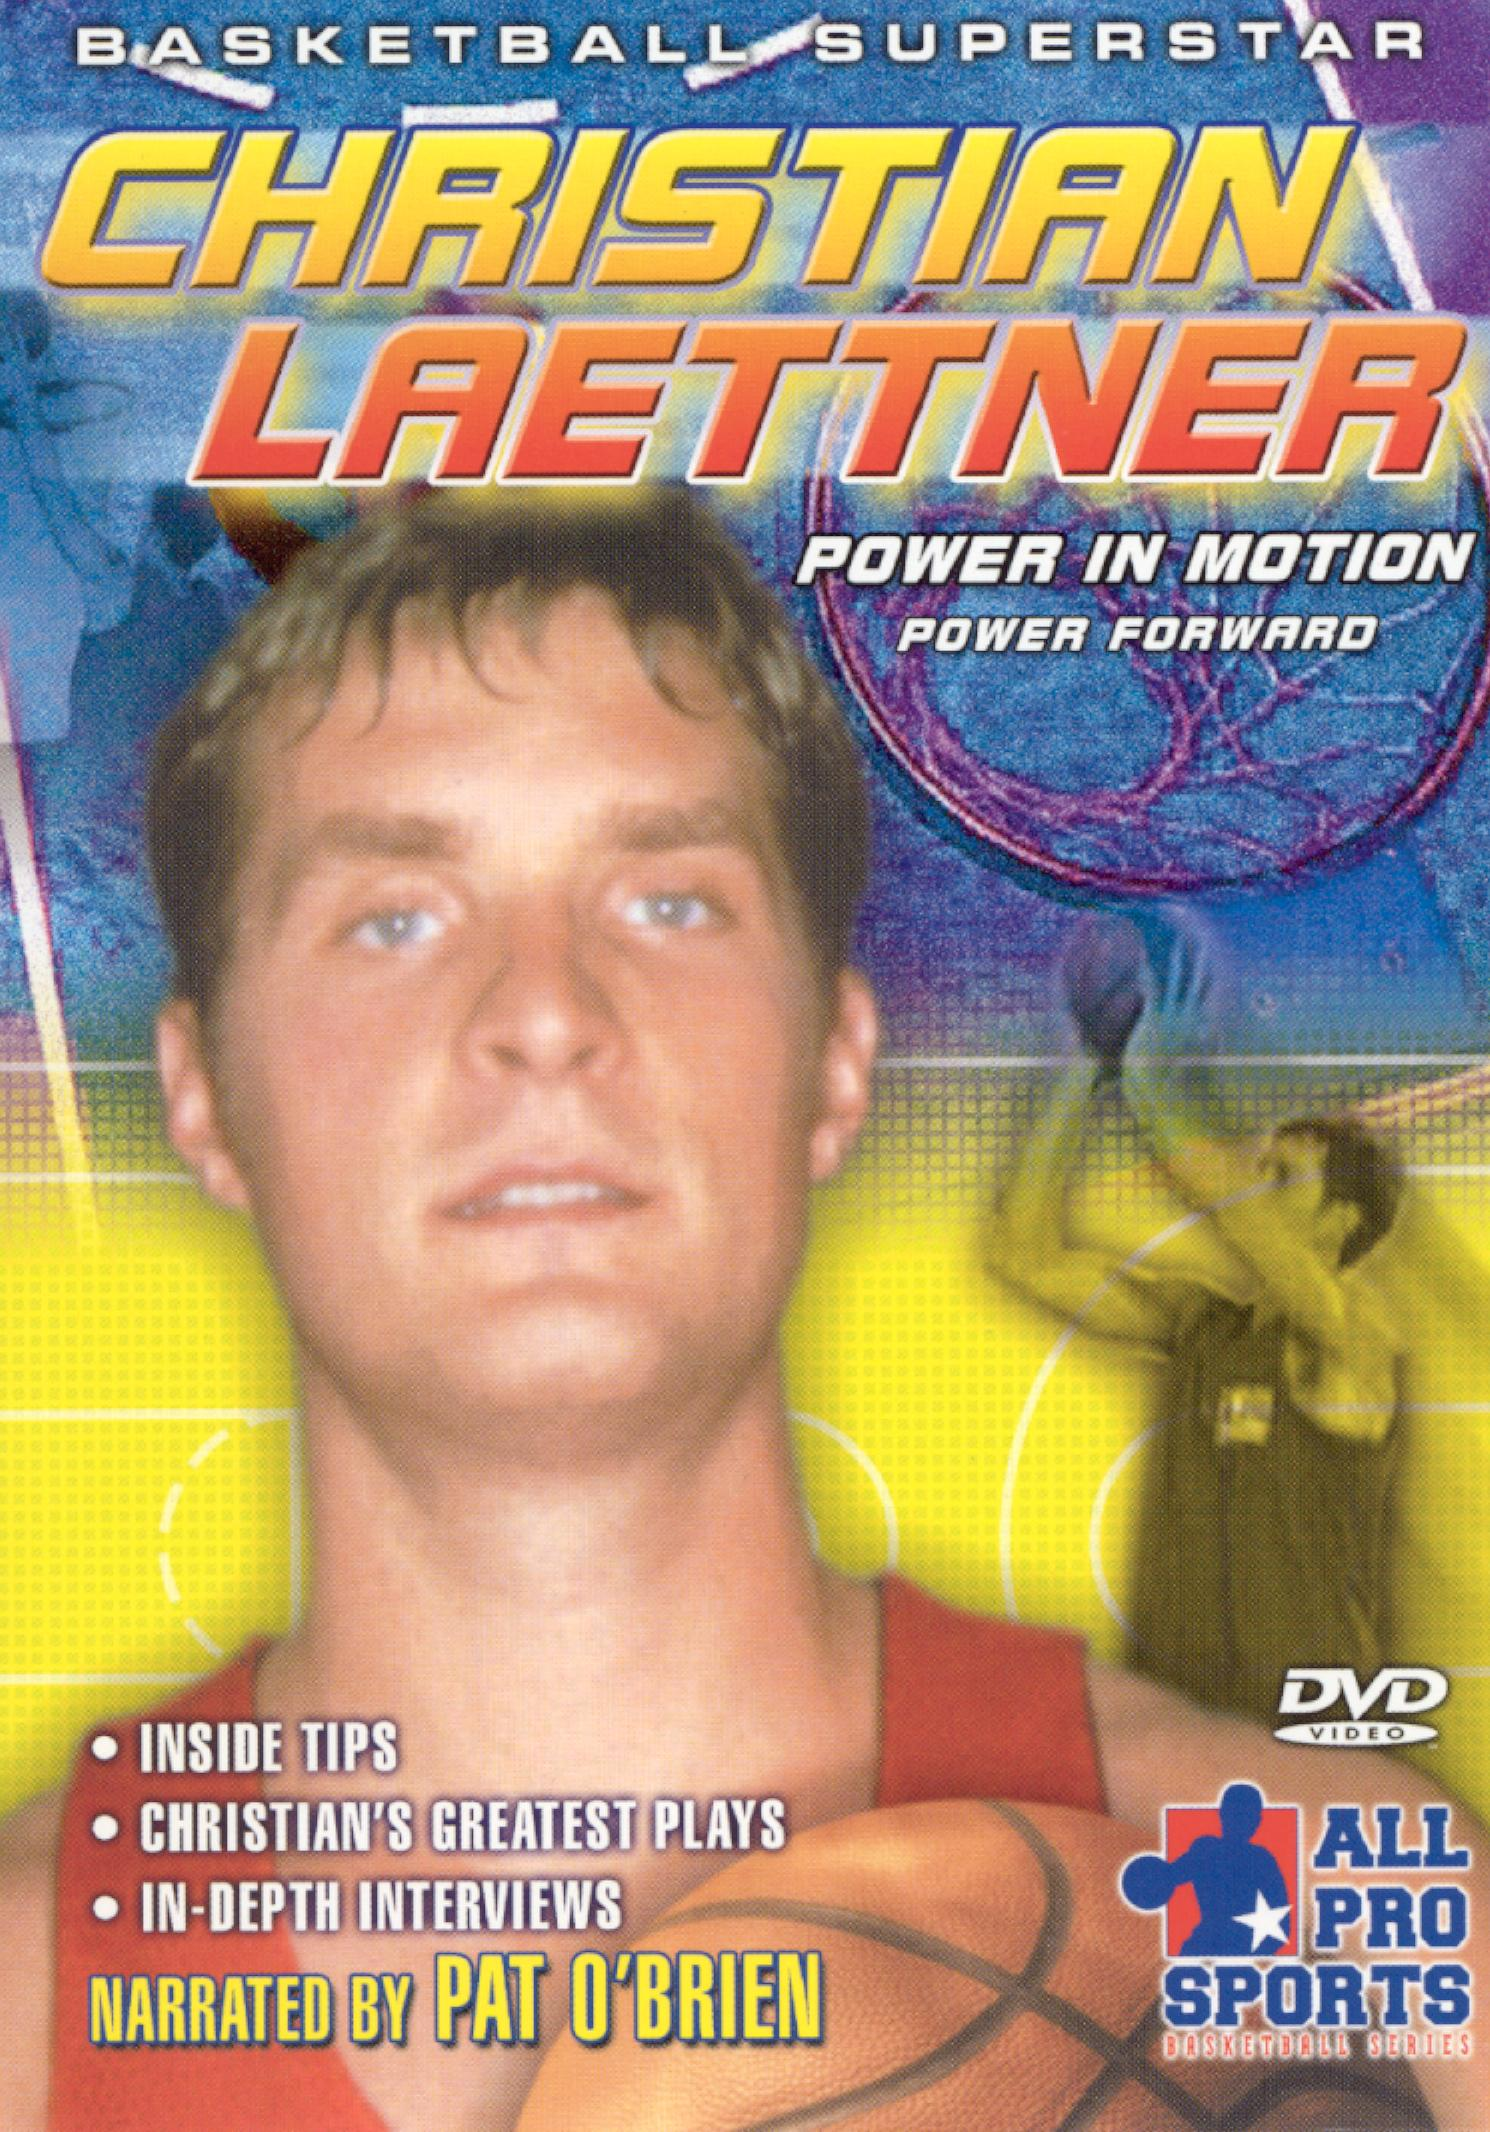 All Pro Sports Basketball Series: Christian Laettner - Power in Motion